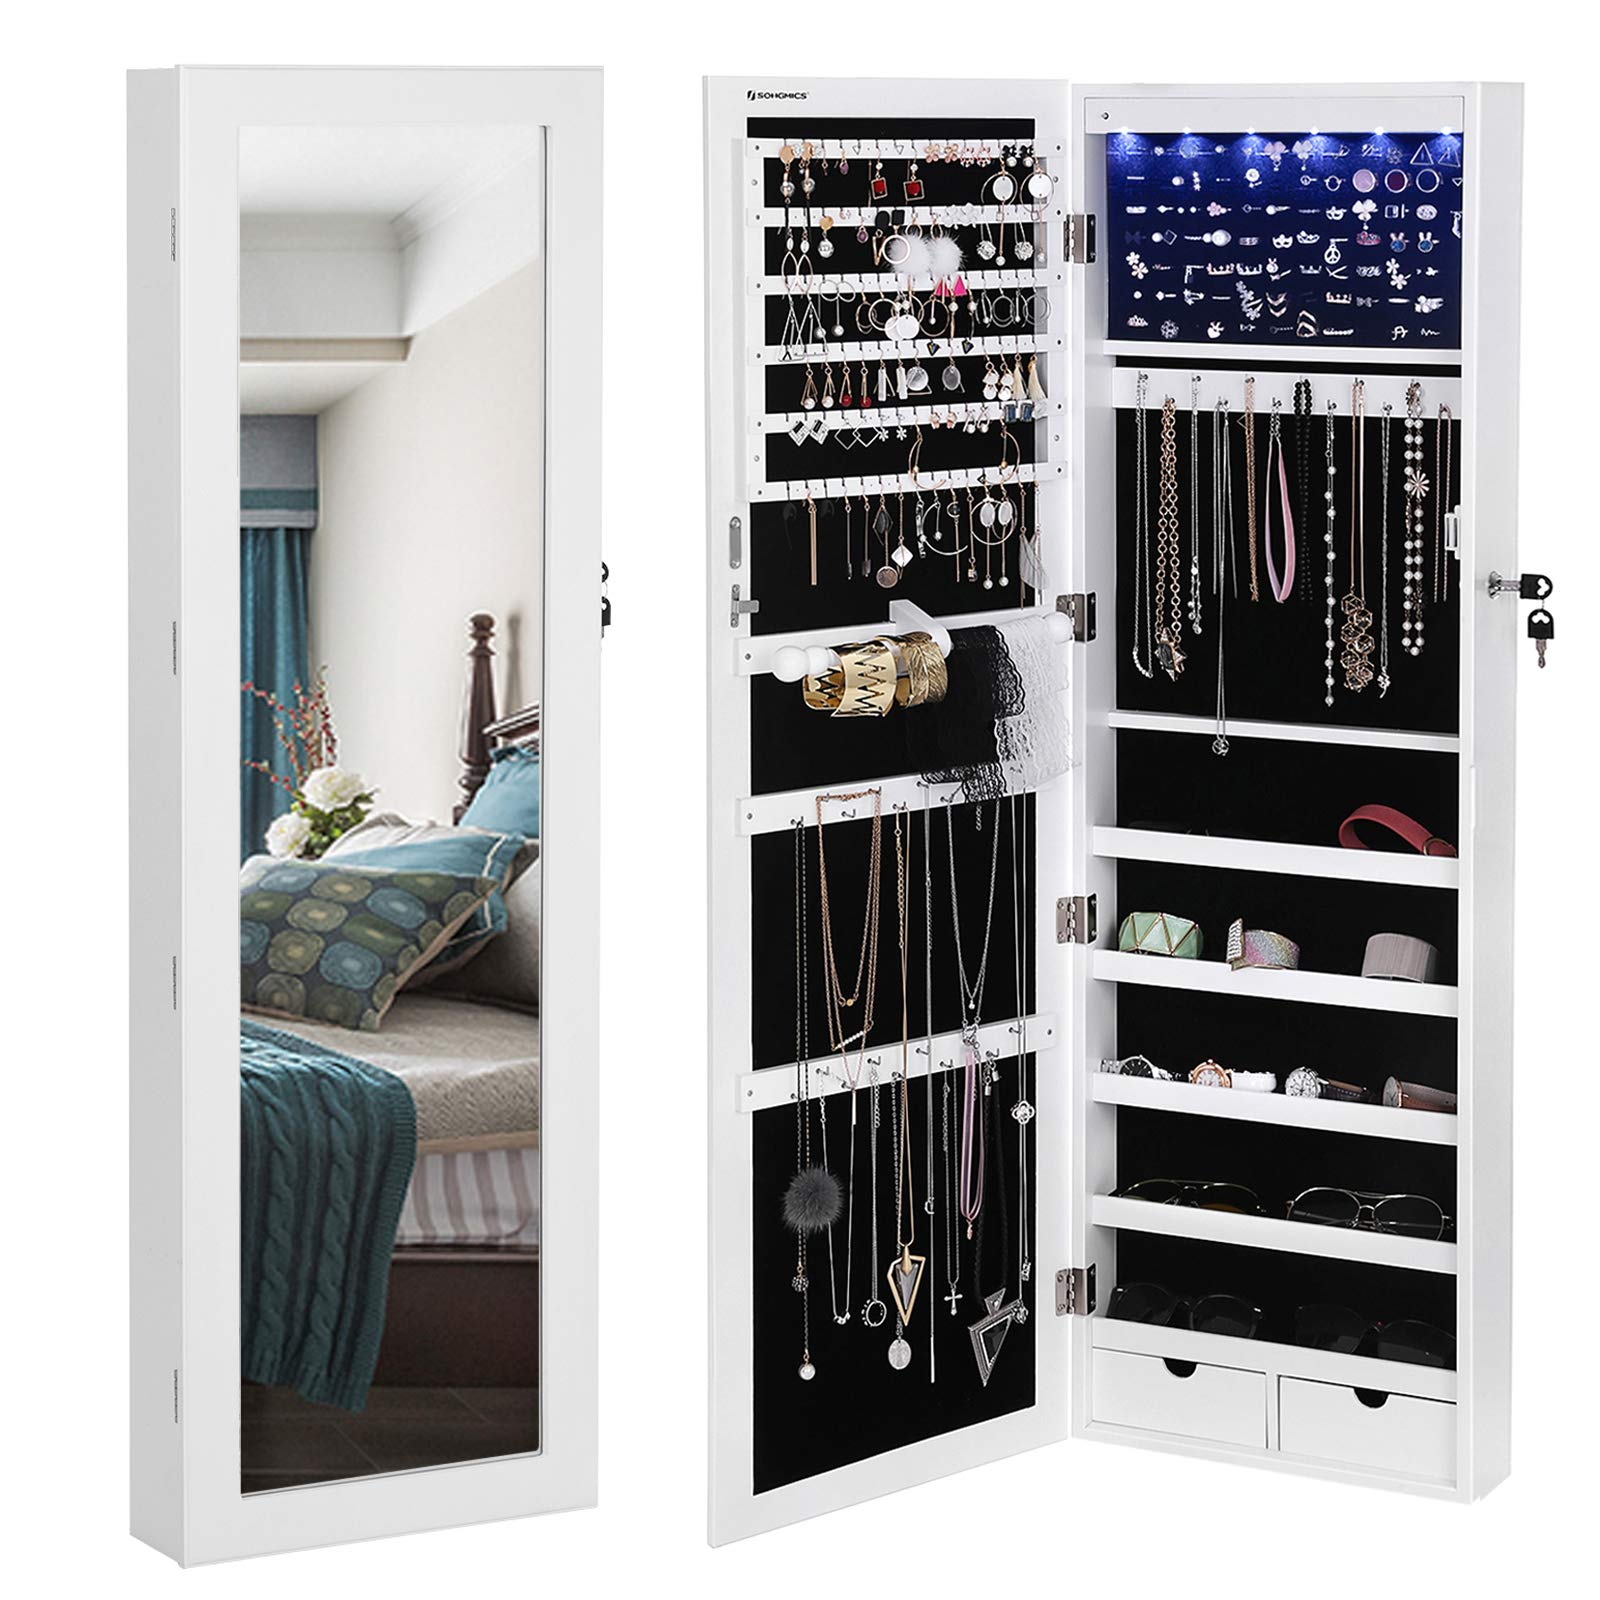 SONGMICS 6 LEDs Mirror Jewelry Cabinet Lockable Wall/Door Mounted Jewelry Armoire Organizer with Mirror, 2 Drawers, Pure White UJJC93W by SONGMICS